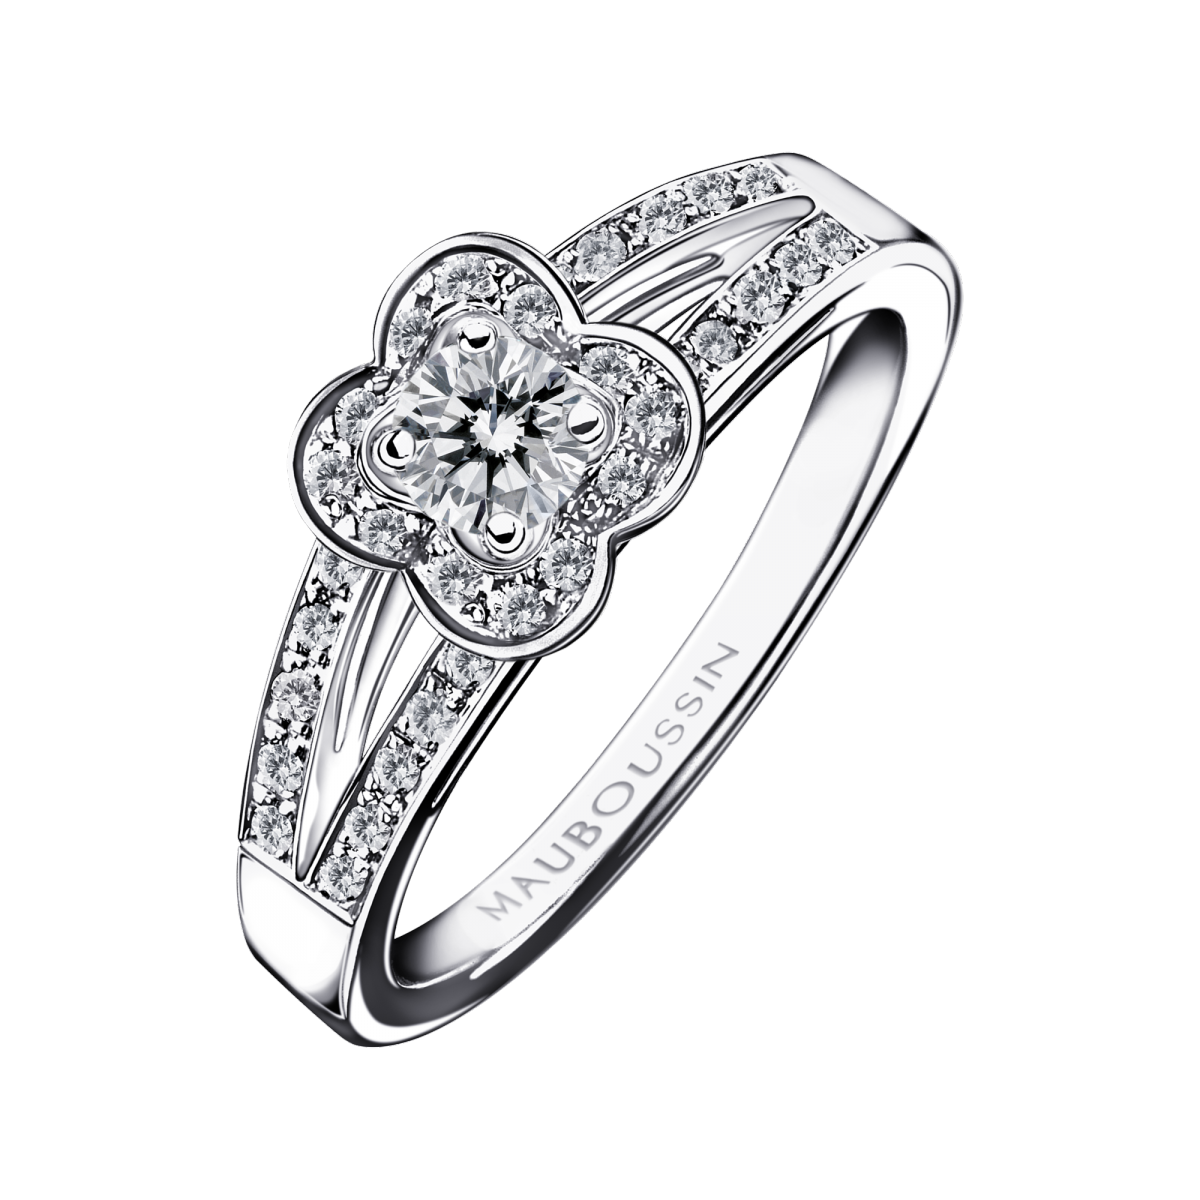 Chance of Love N°2 ring, white gold and diamonds